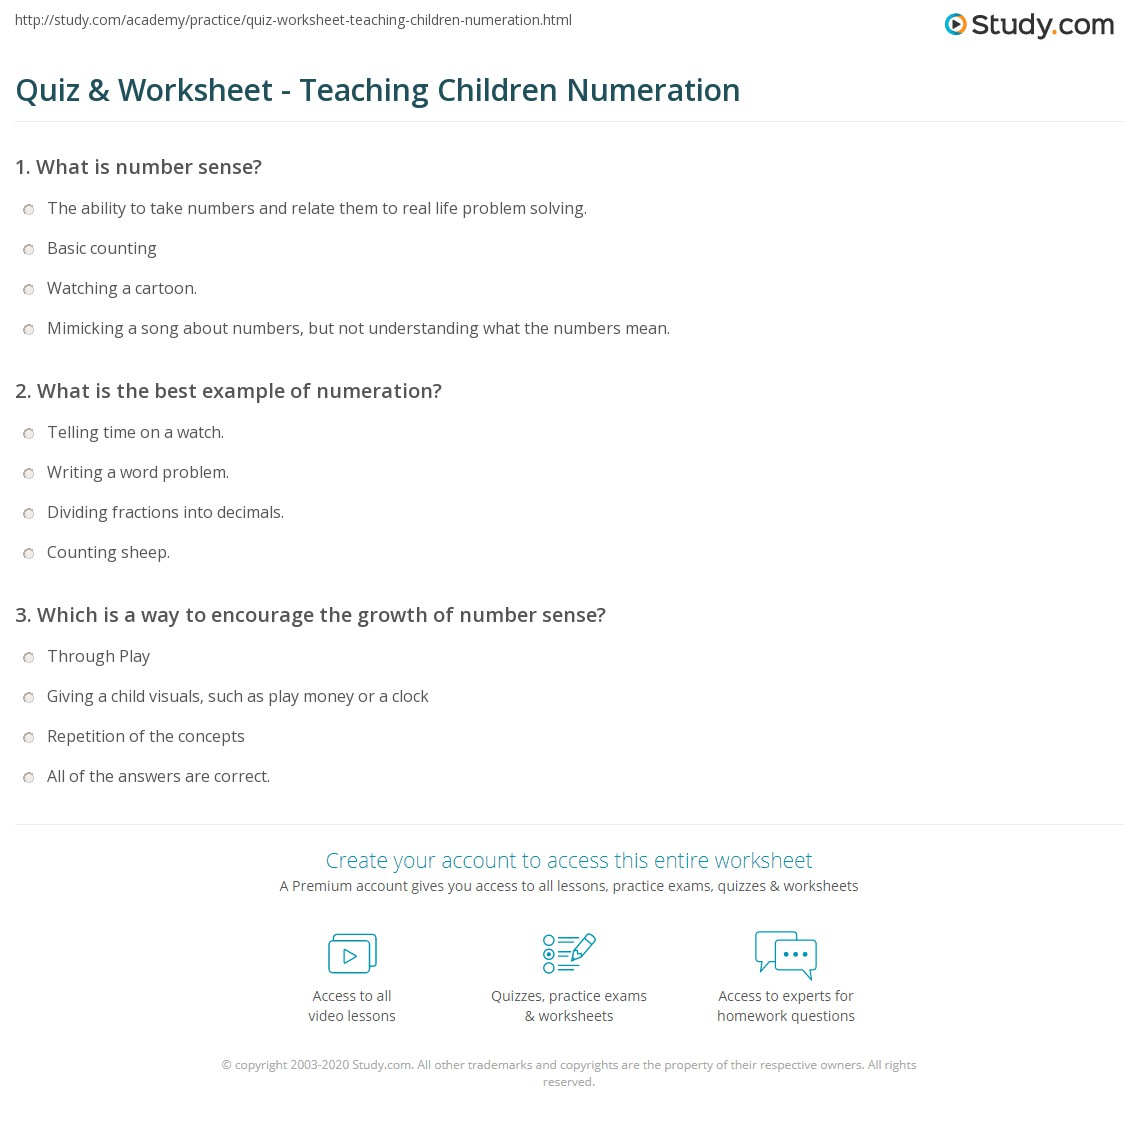 Quiz & Worksheet - Teaching Children Numeration | Study.com